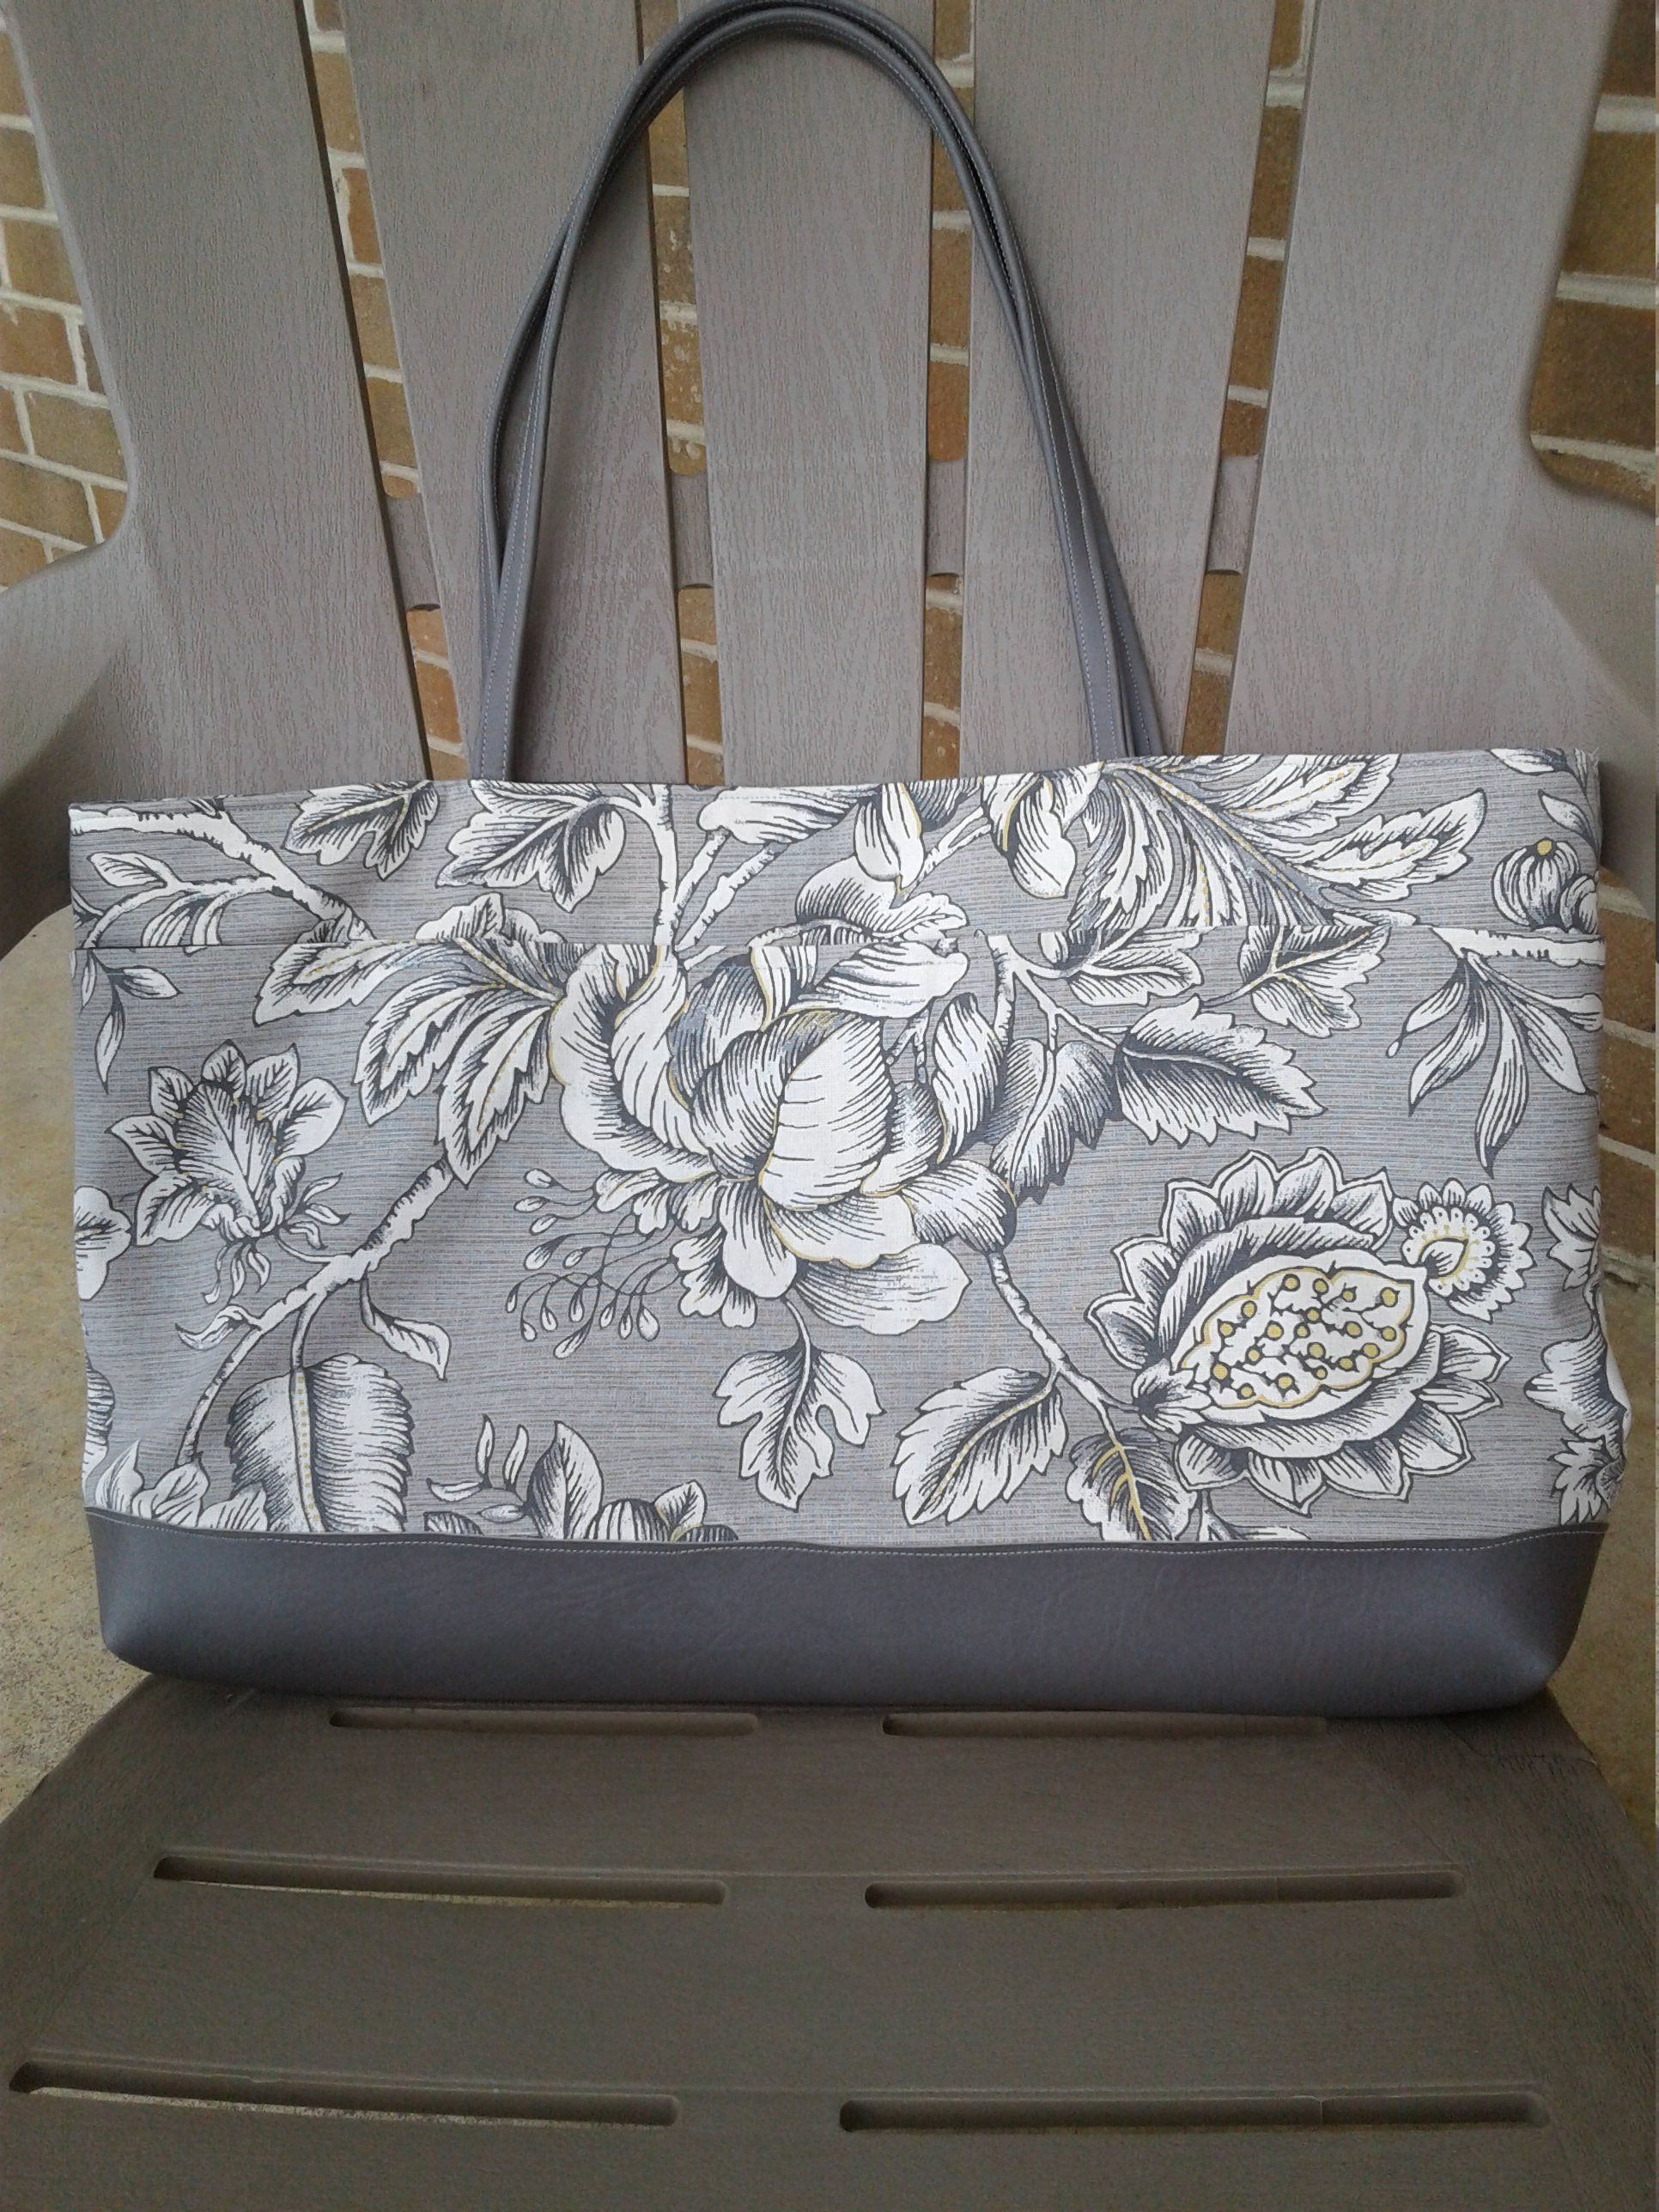 Flower Tote Bag 18w X 12t X 3d Grey Tote Bags Striped Tote